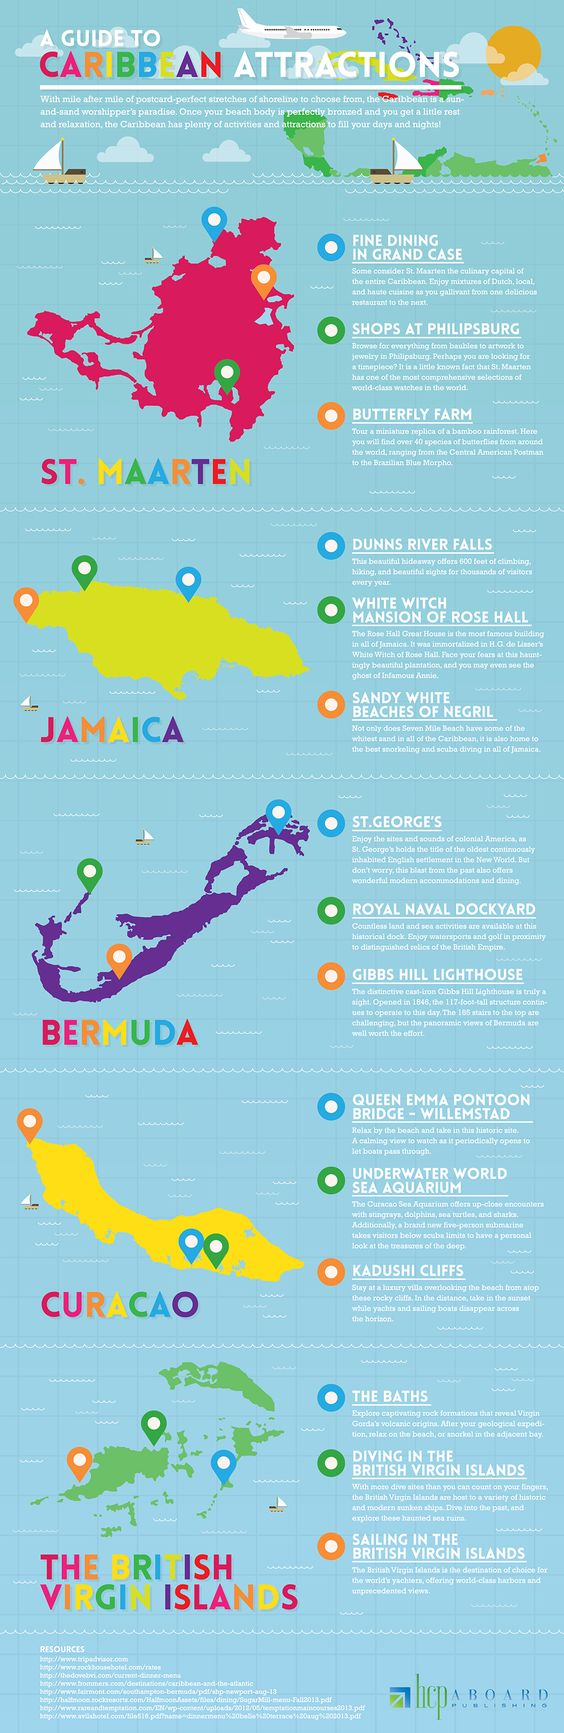 A Guide To Caribbean Attractions!  #Caribbean #Travel | #infographics